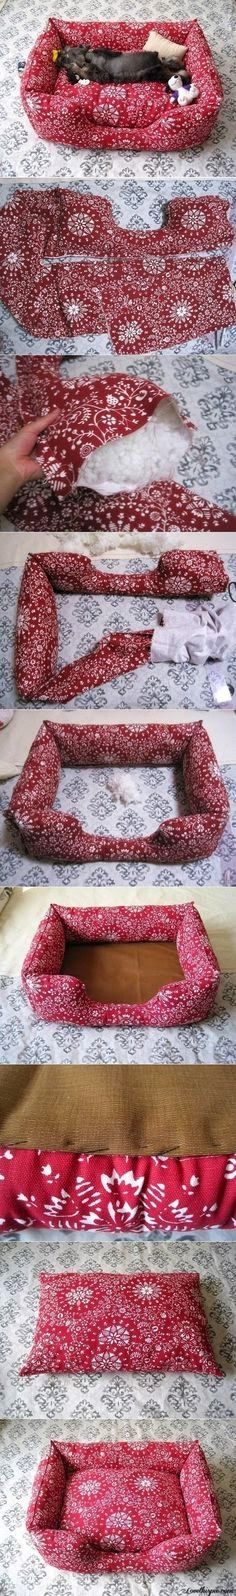 Picture tutorial to sew your own pet bed - posted on Amazing Crafts site.